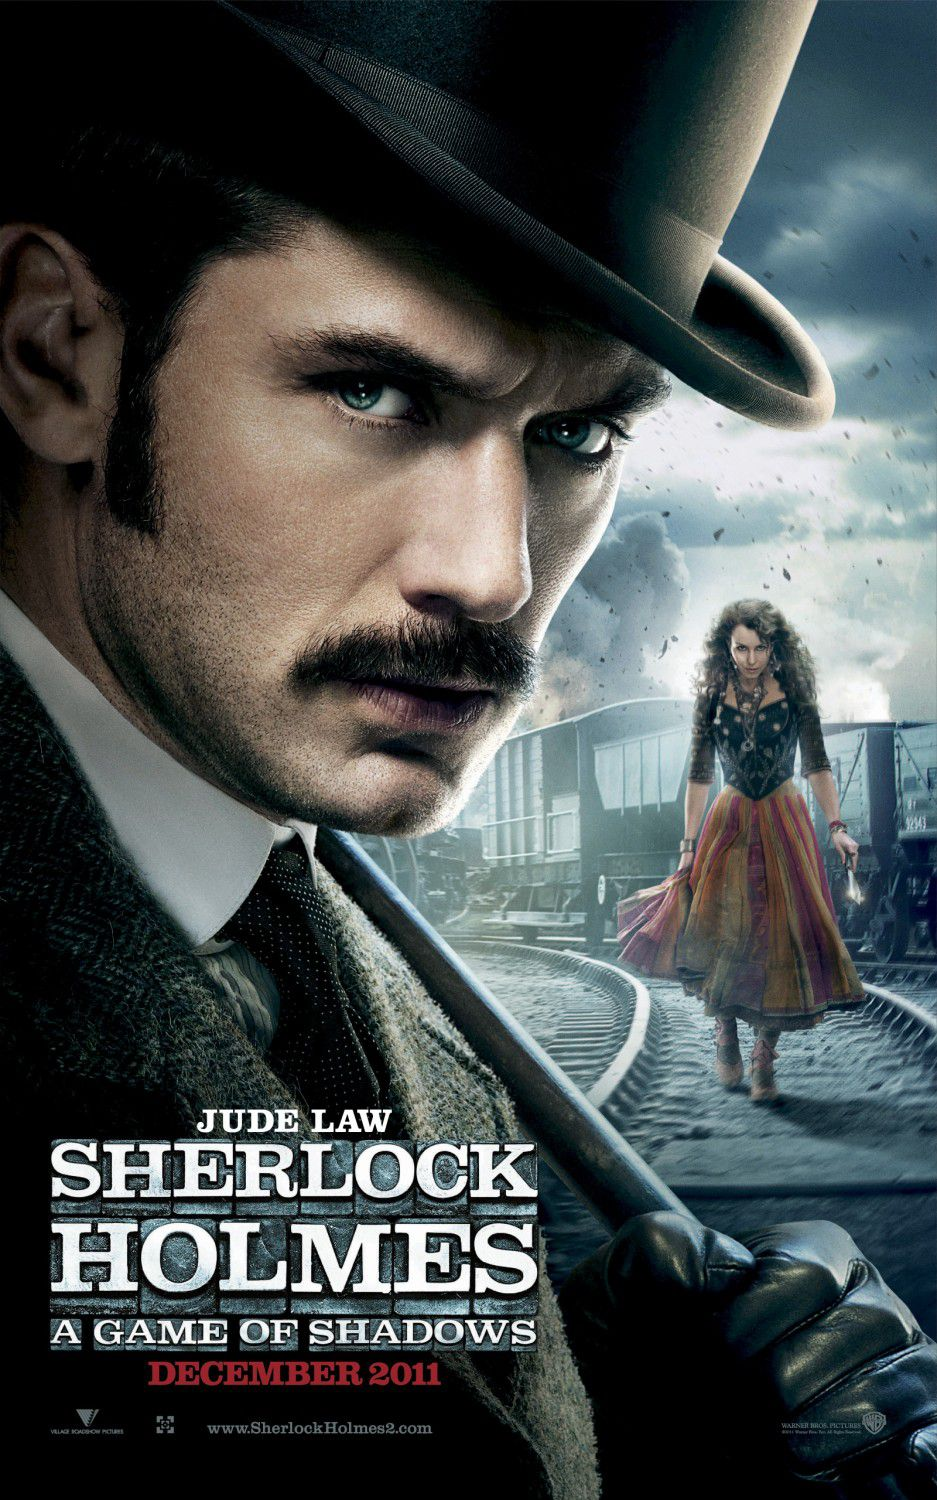 Sherlock Holmes a Game of Shadows - Gioco di Ombre (2011) - Jude Law